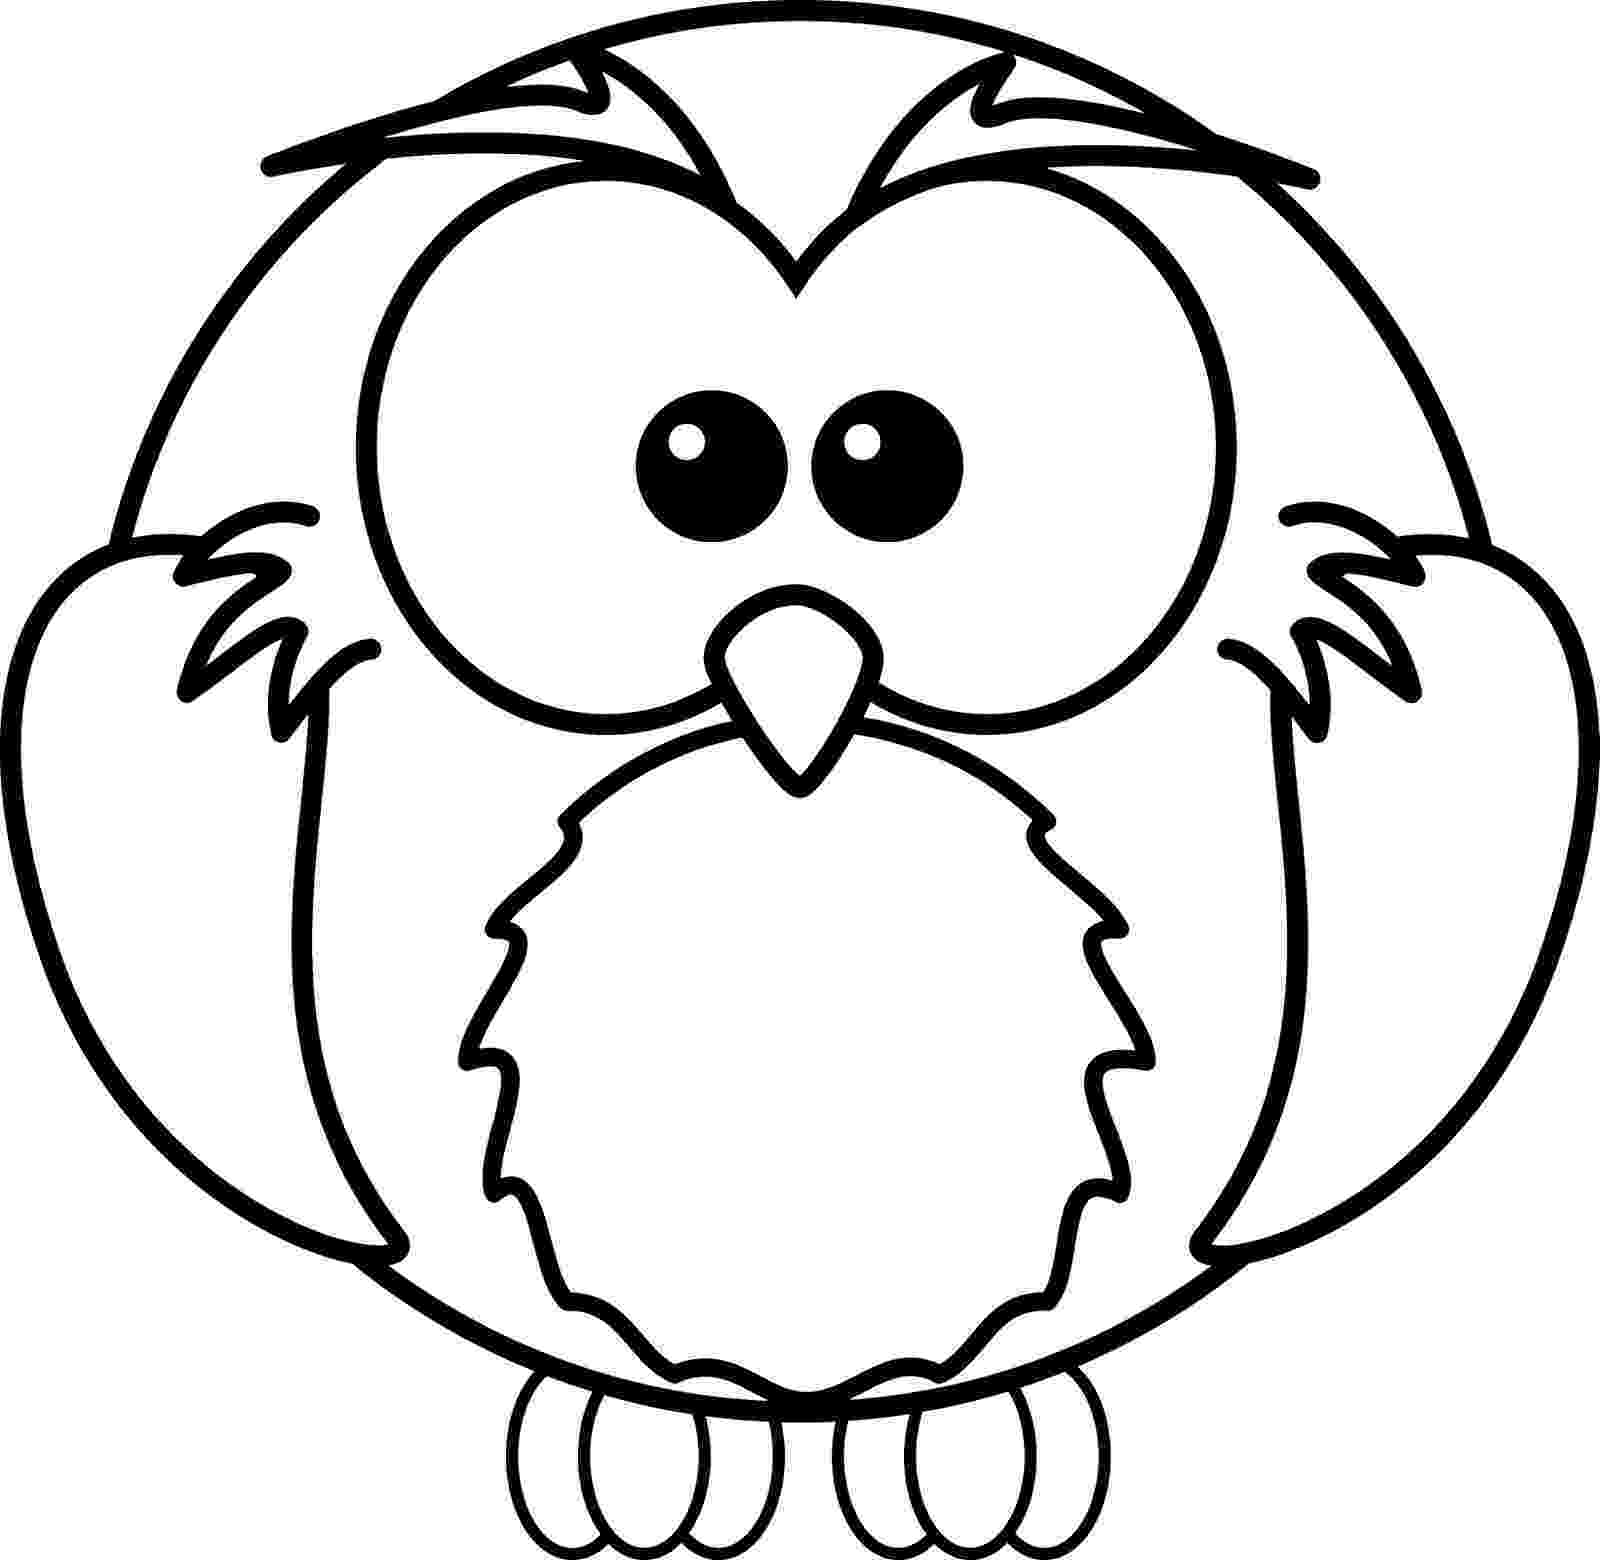 print owl pictures baby owls coloring sheet to print pictures print owl